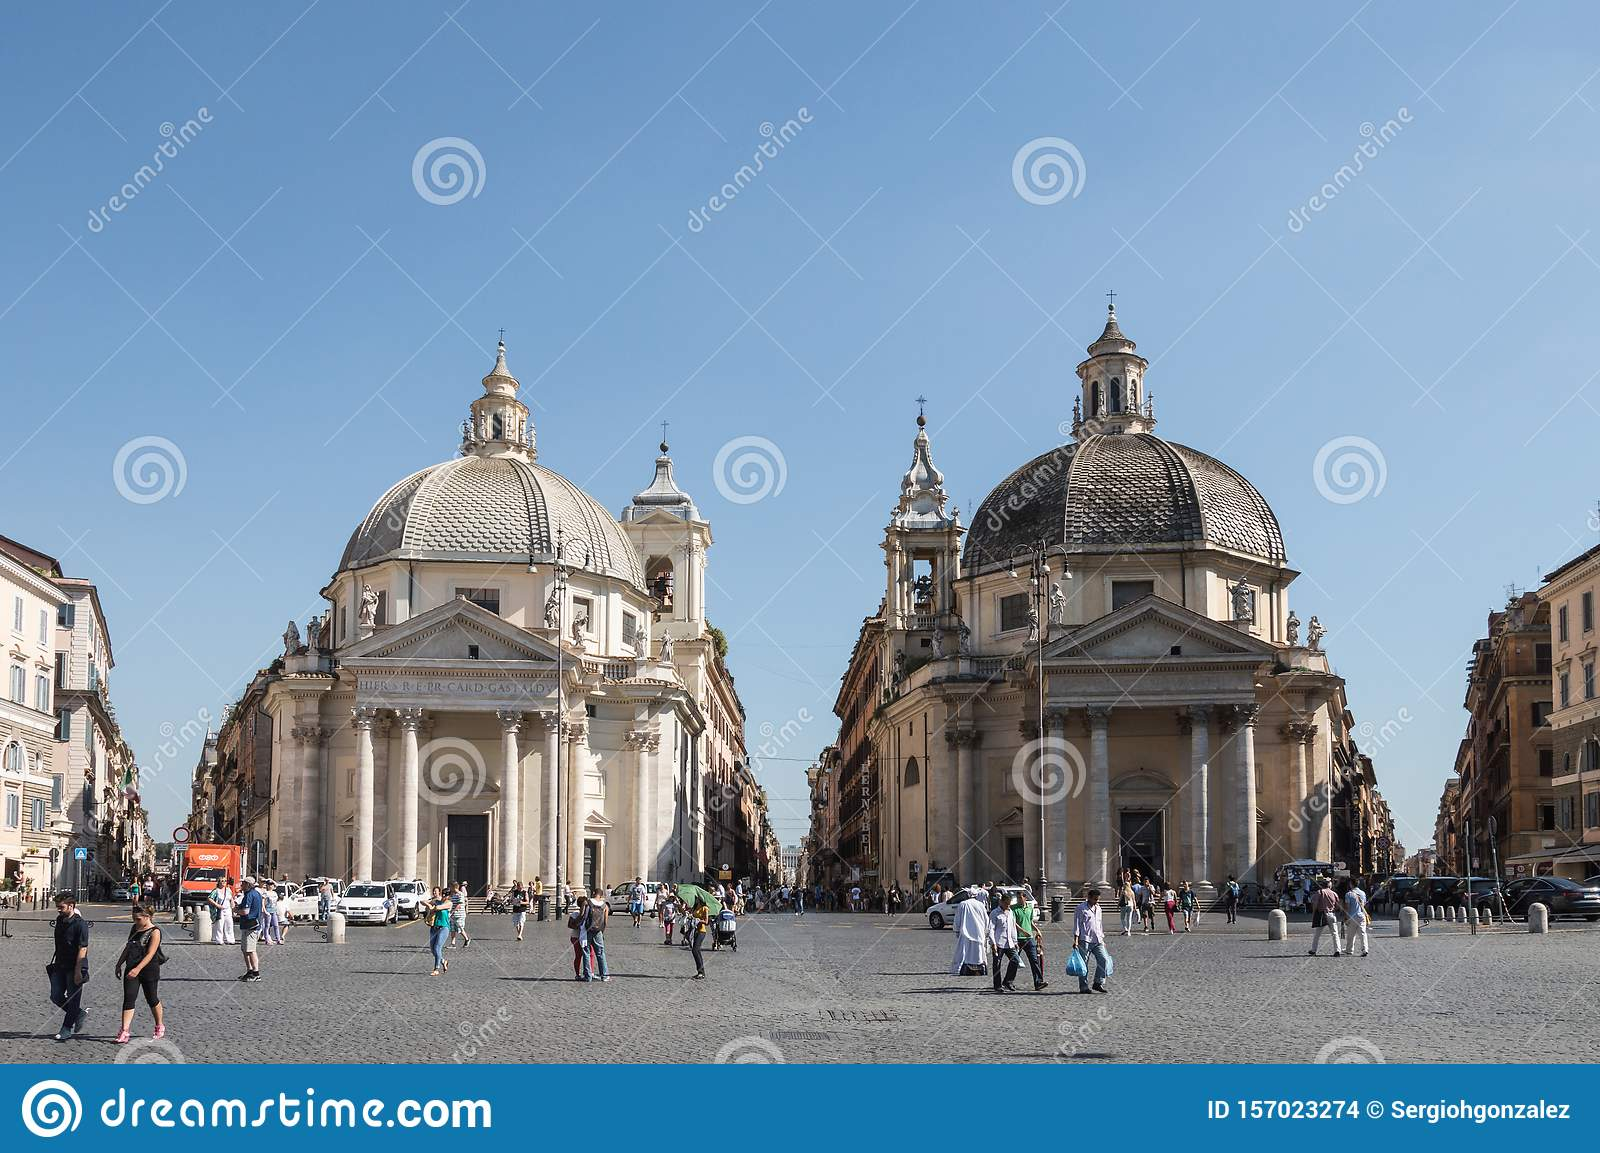 Saint Mary in Montesanto and Chiesa di Santa Maria dei miracoli churches facades crowded with tourists in a sunny day